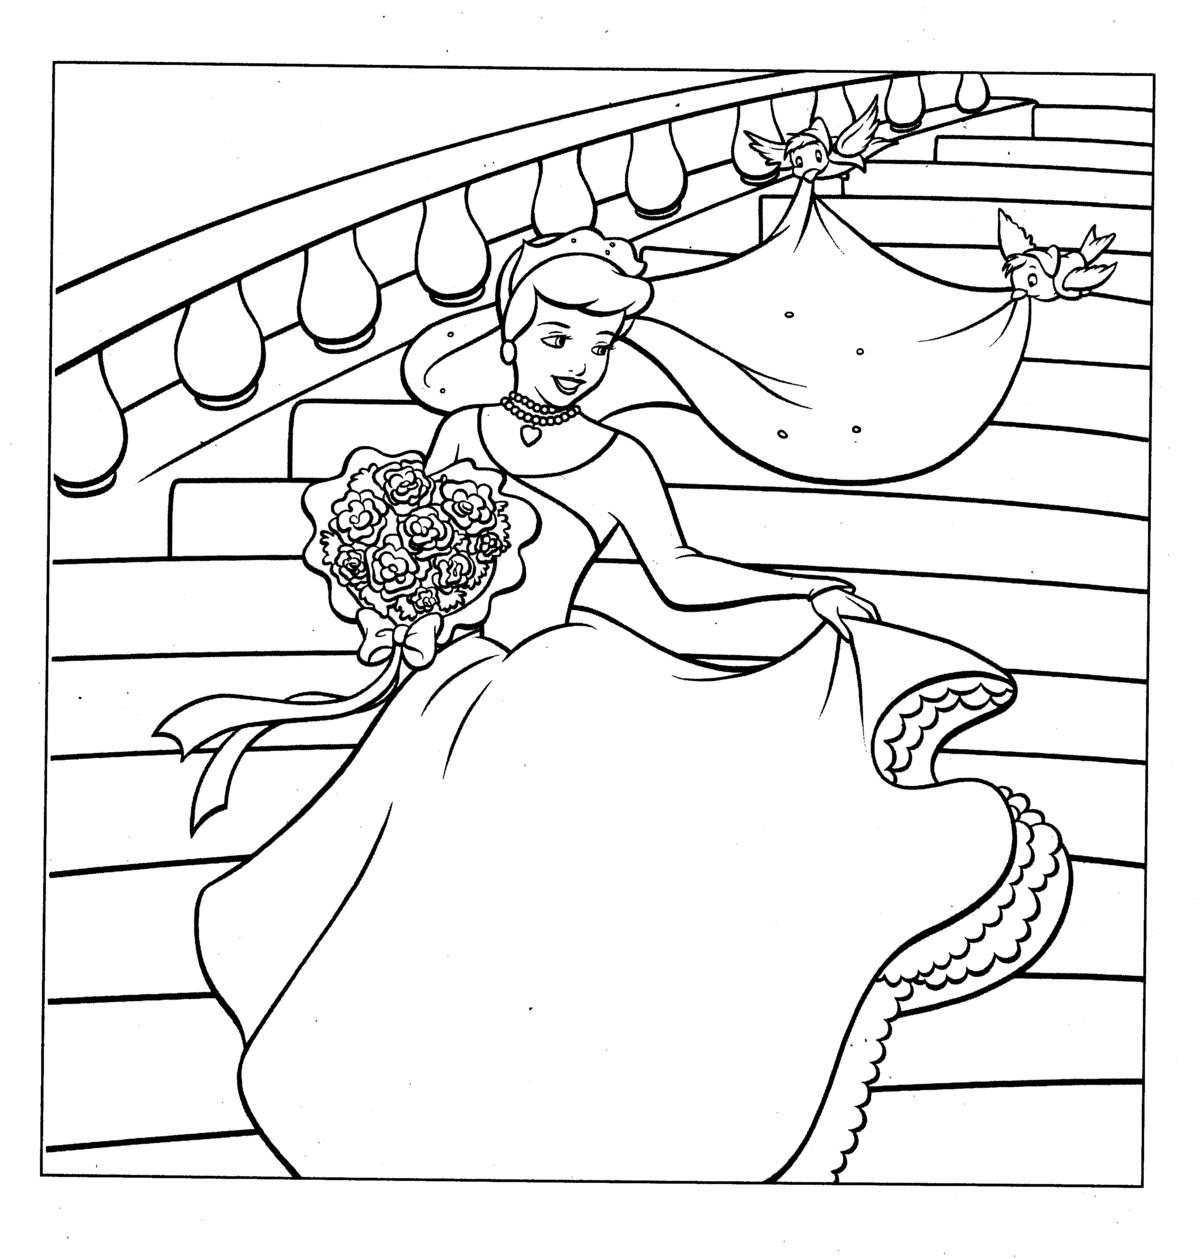 Halloween Coloring Pages: Disney Princess Cinderella and Her Gown ...